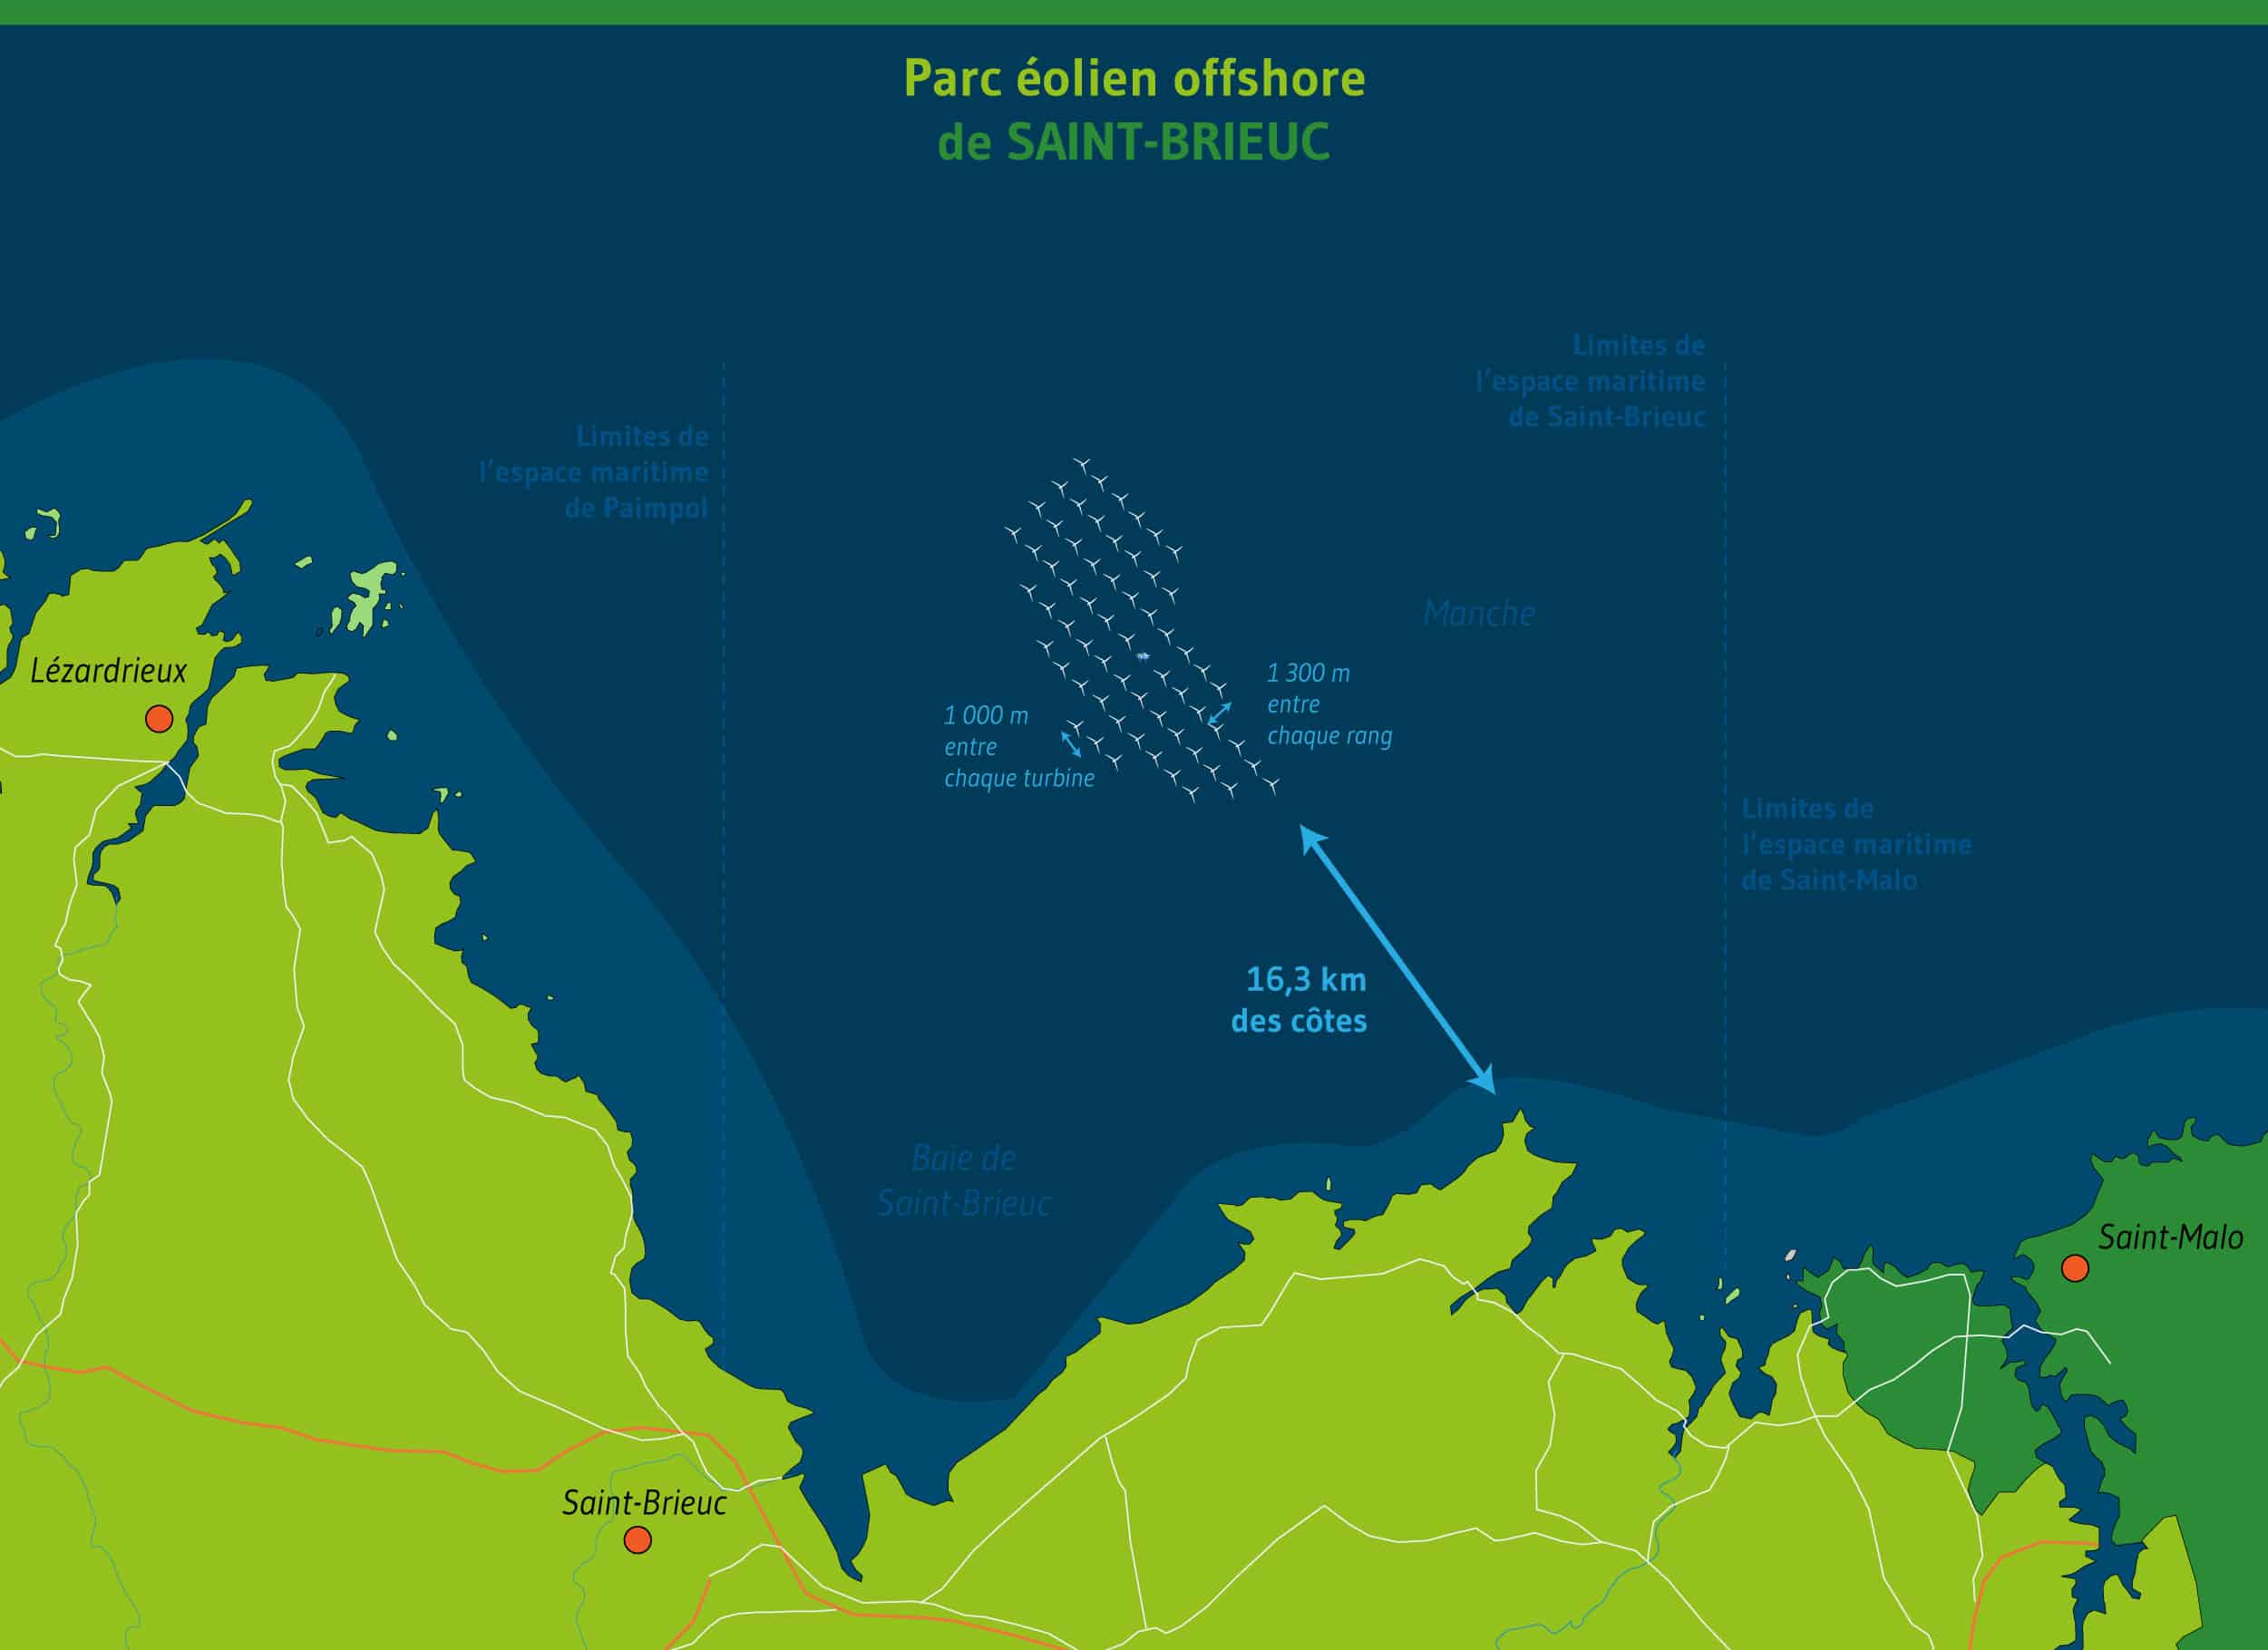 map-off-shore